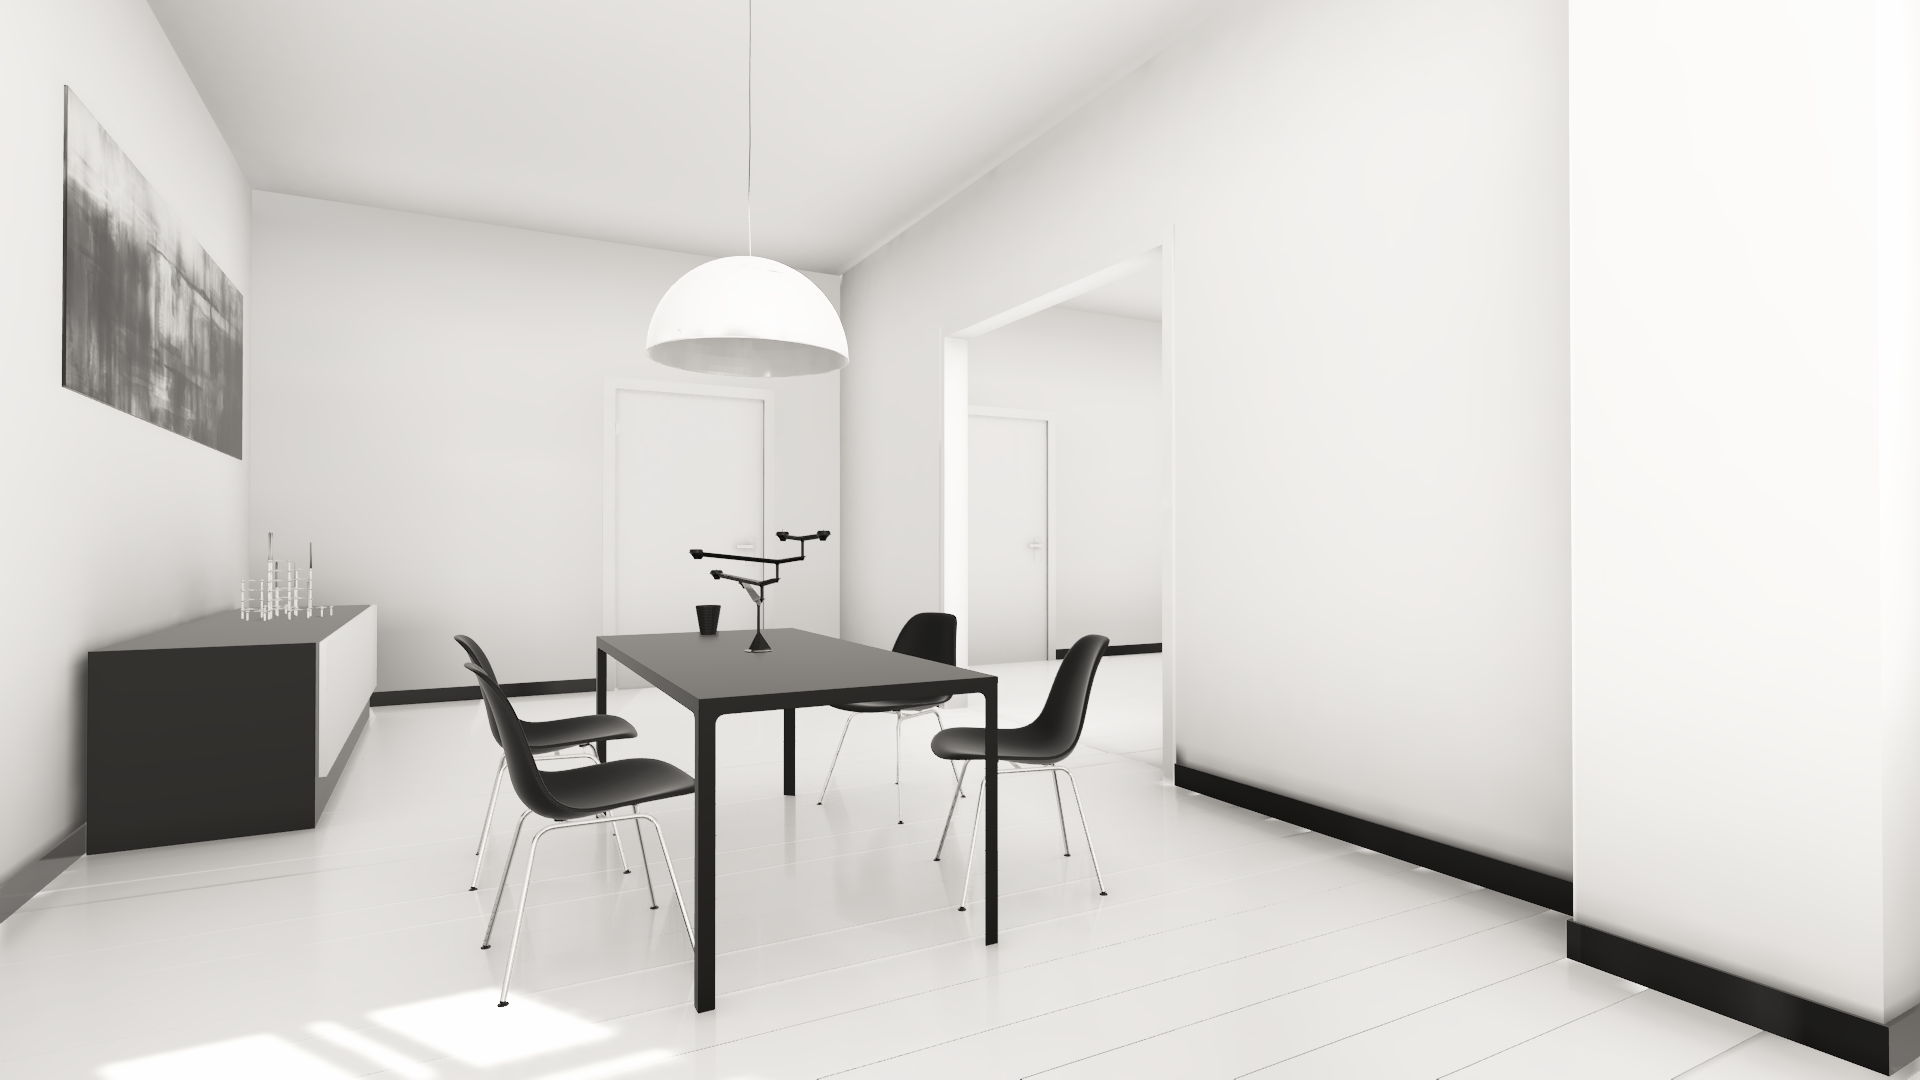 Realtime Rendering - White Bedroom